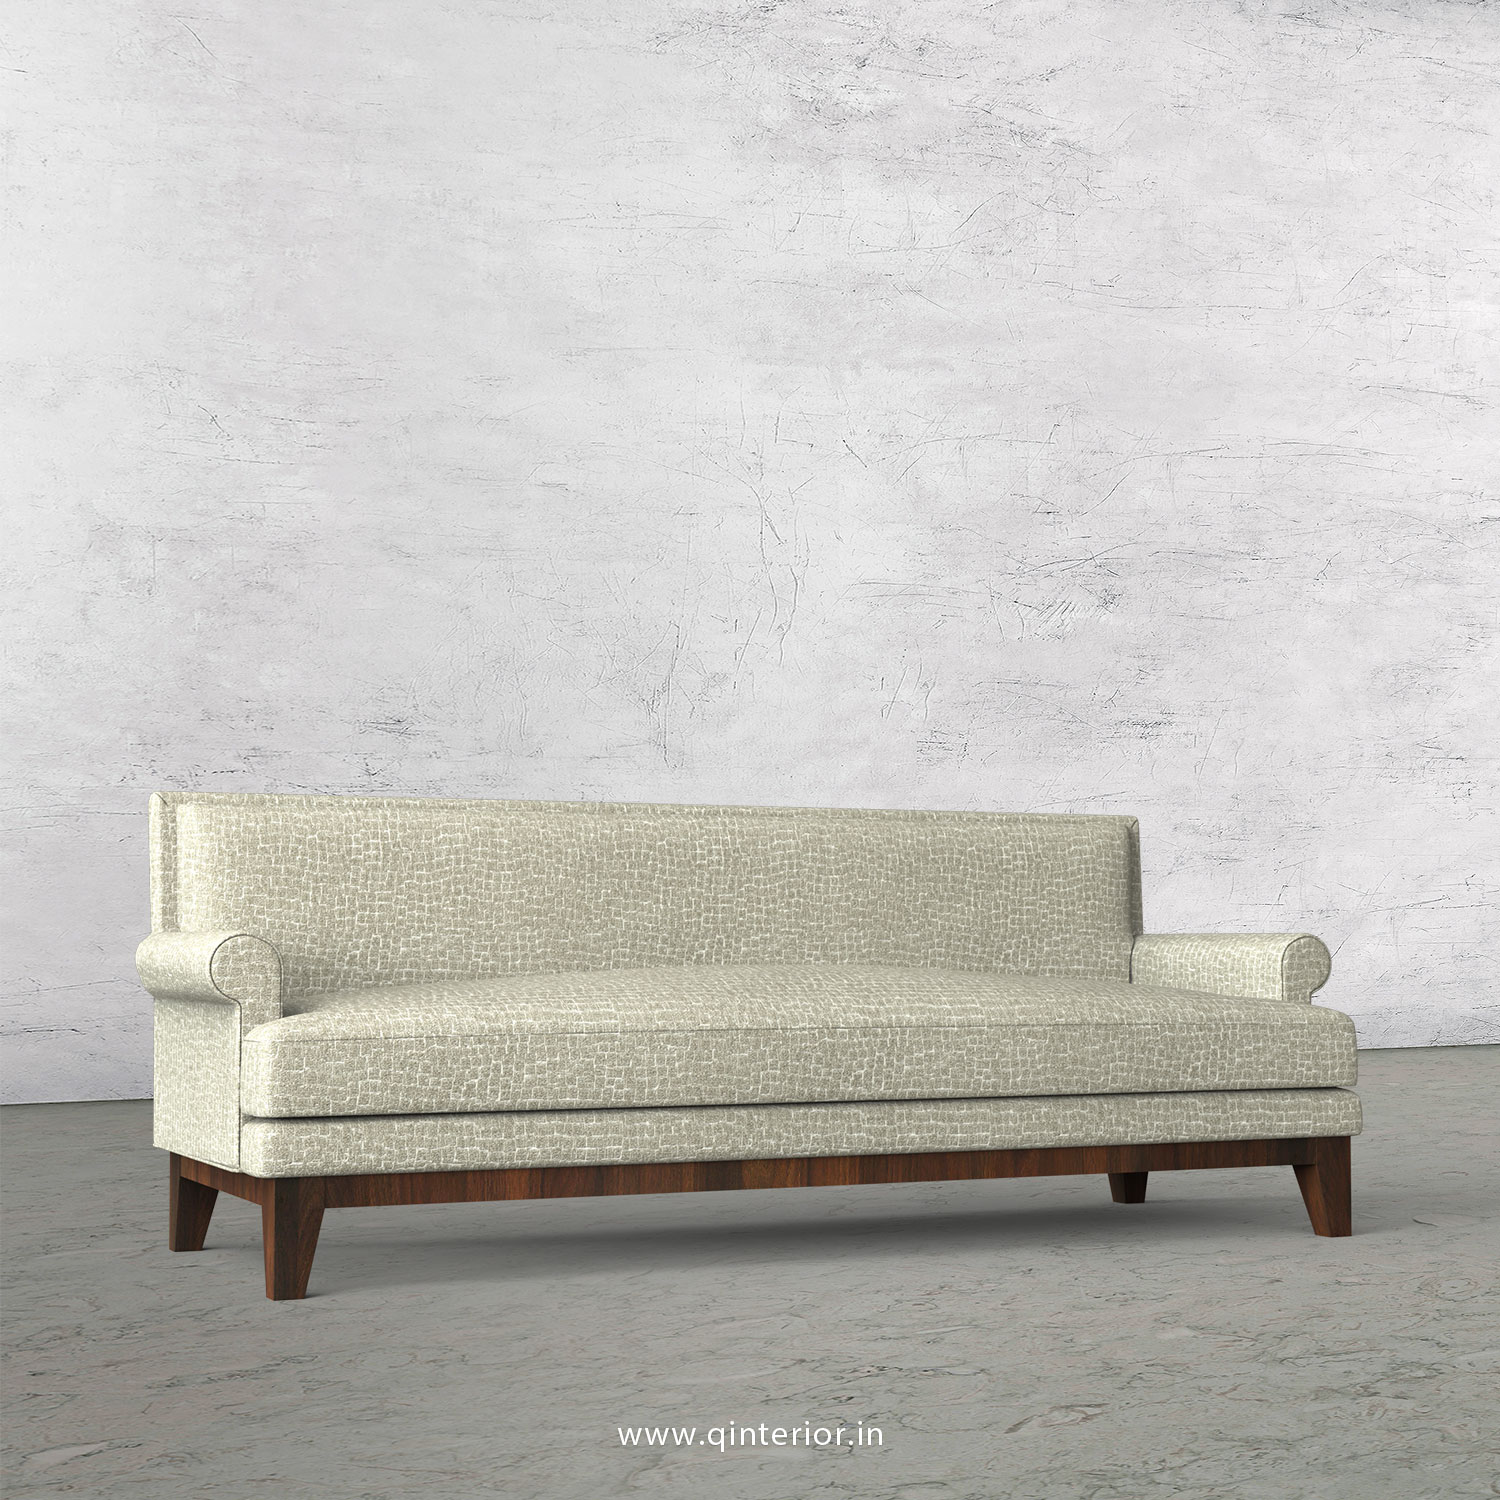 Aviana 3 Seater Sofa in Jacquard - SFA001 JQ31